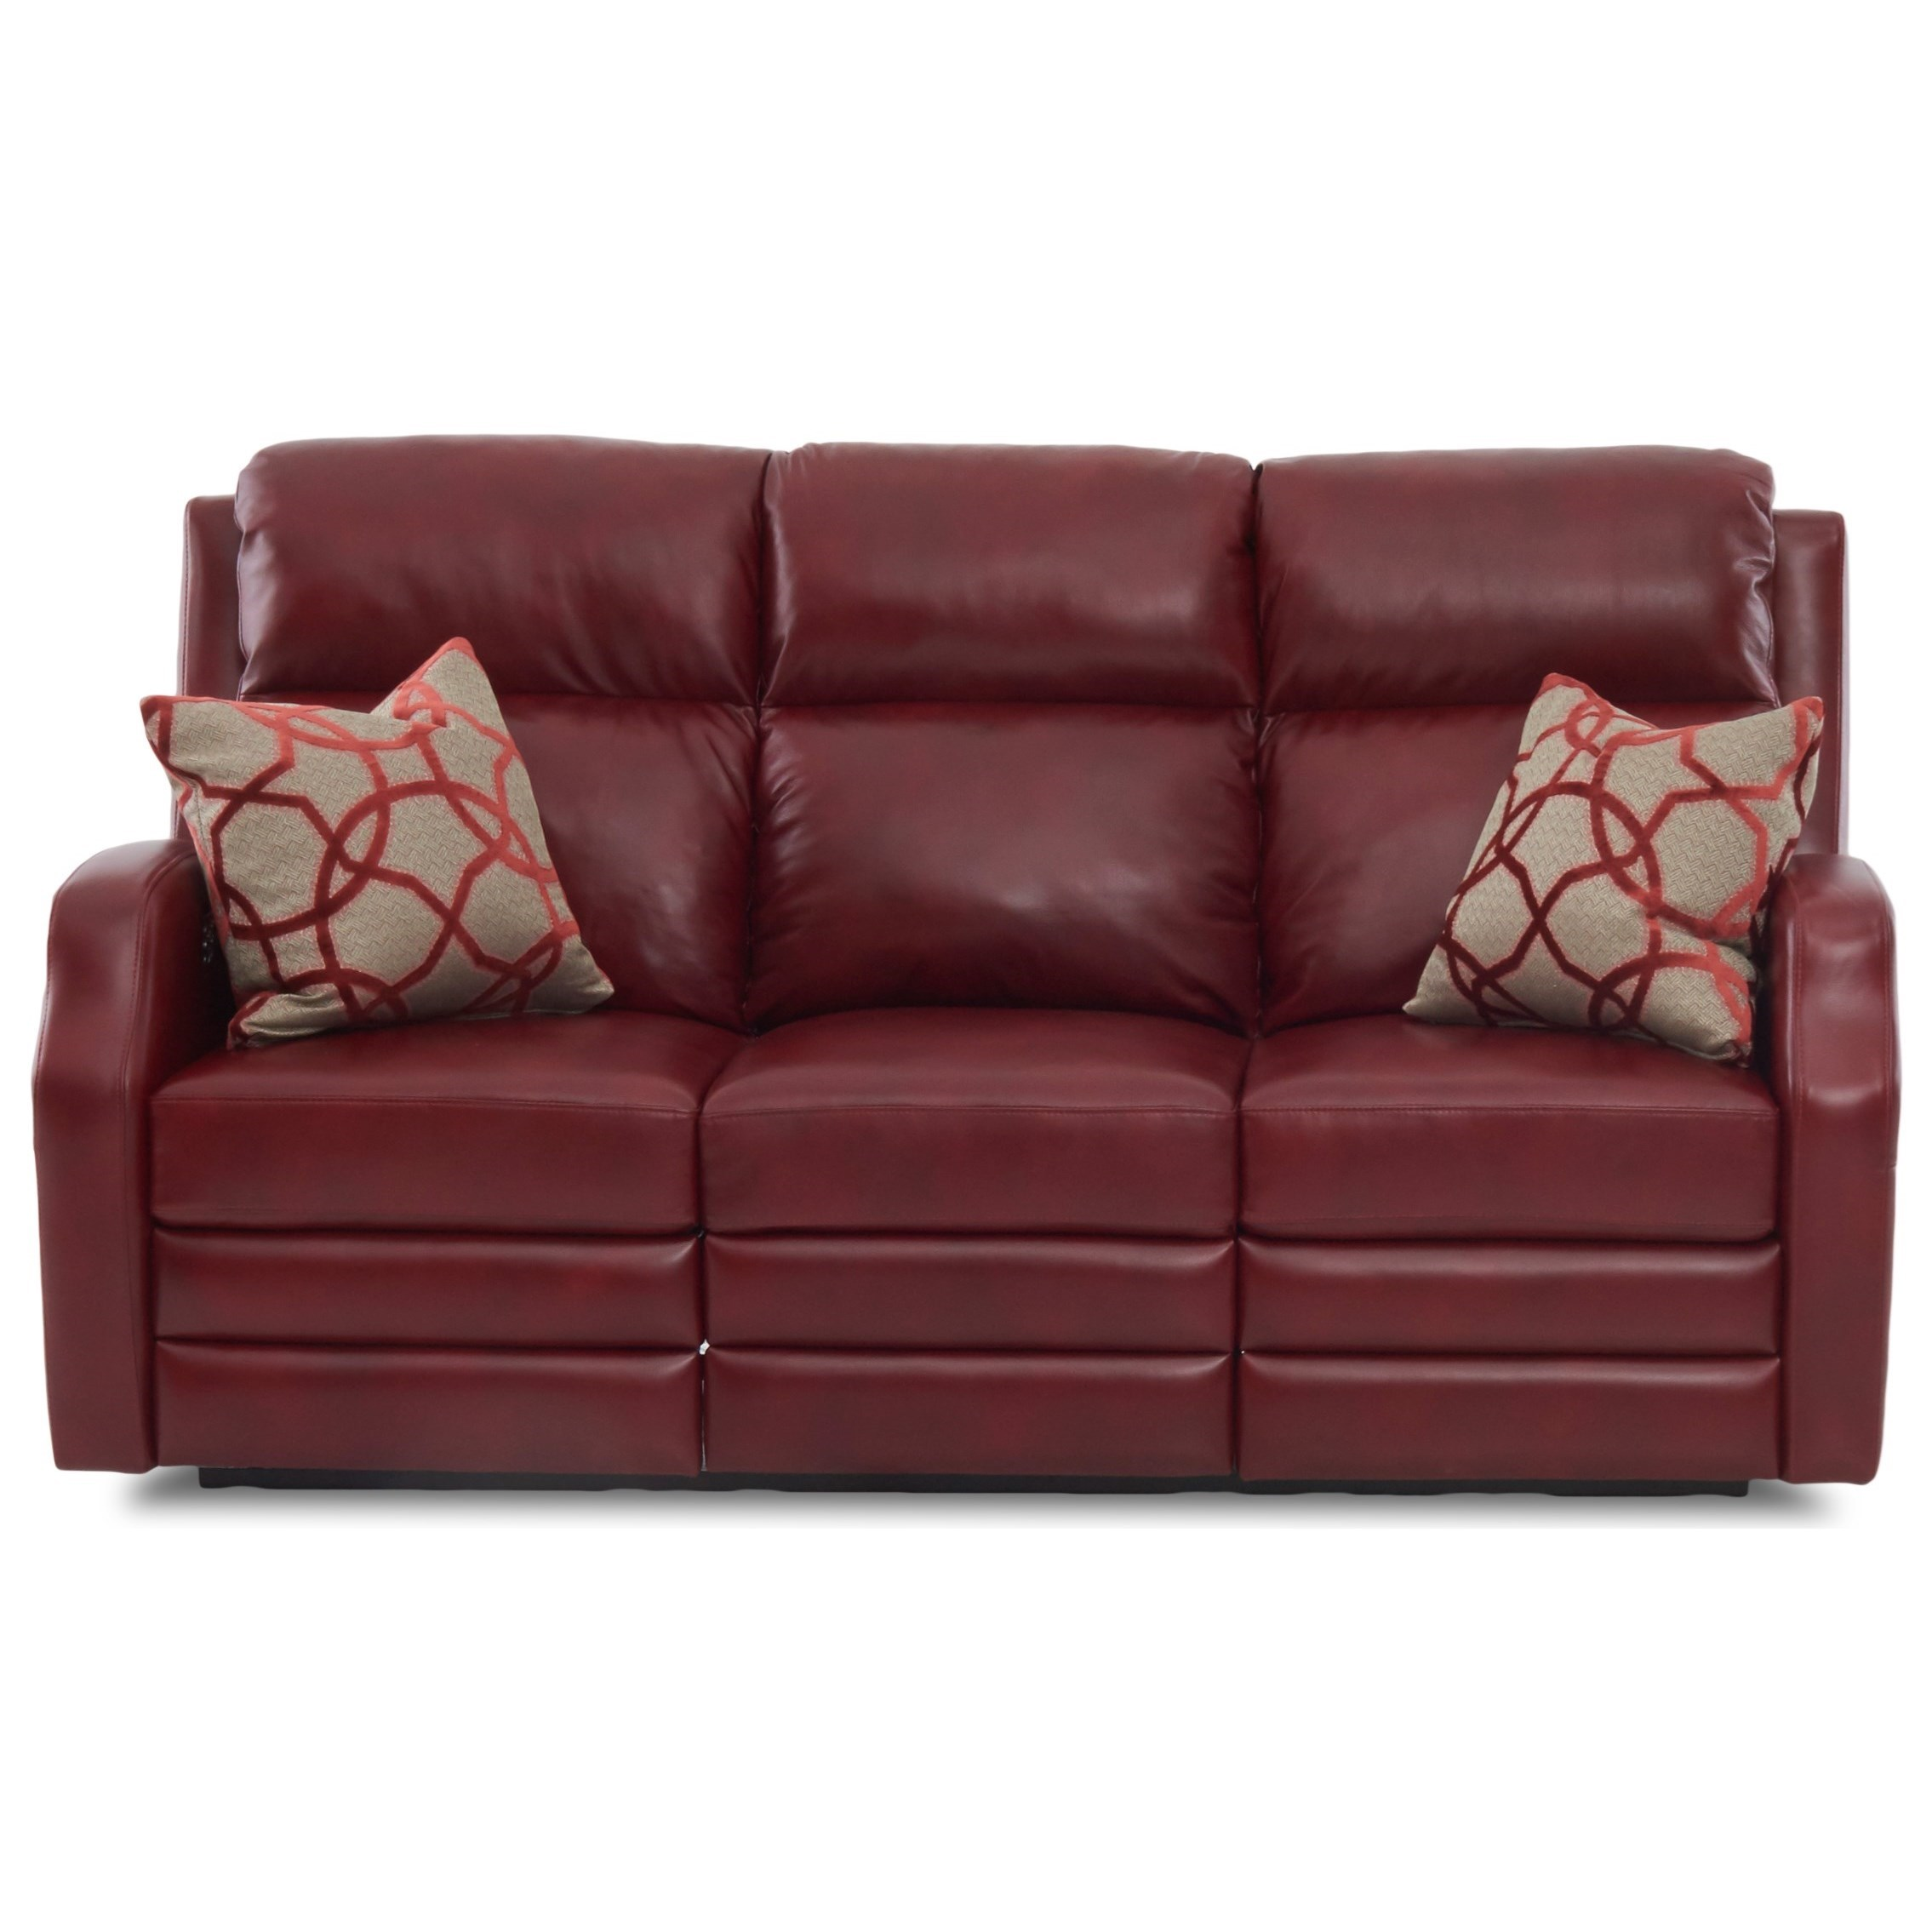 77 Inch Power Reclining Sofa with USB Charging Ports, Power Headrests, Pillows